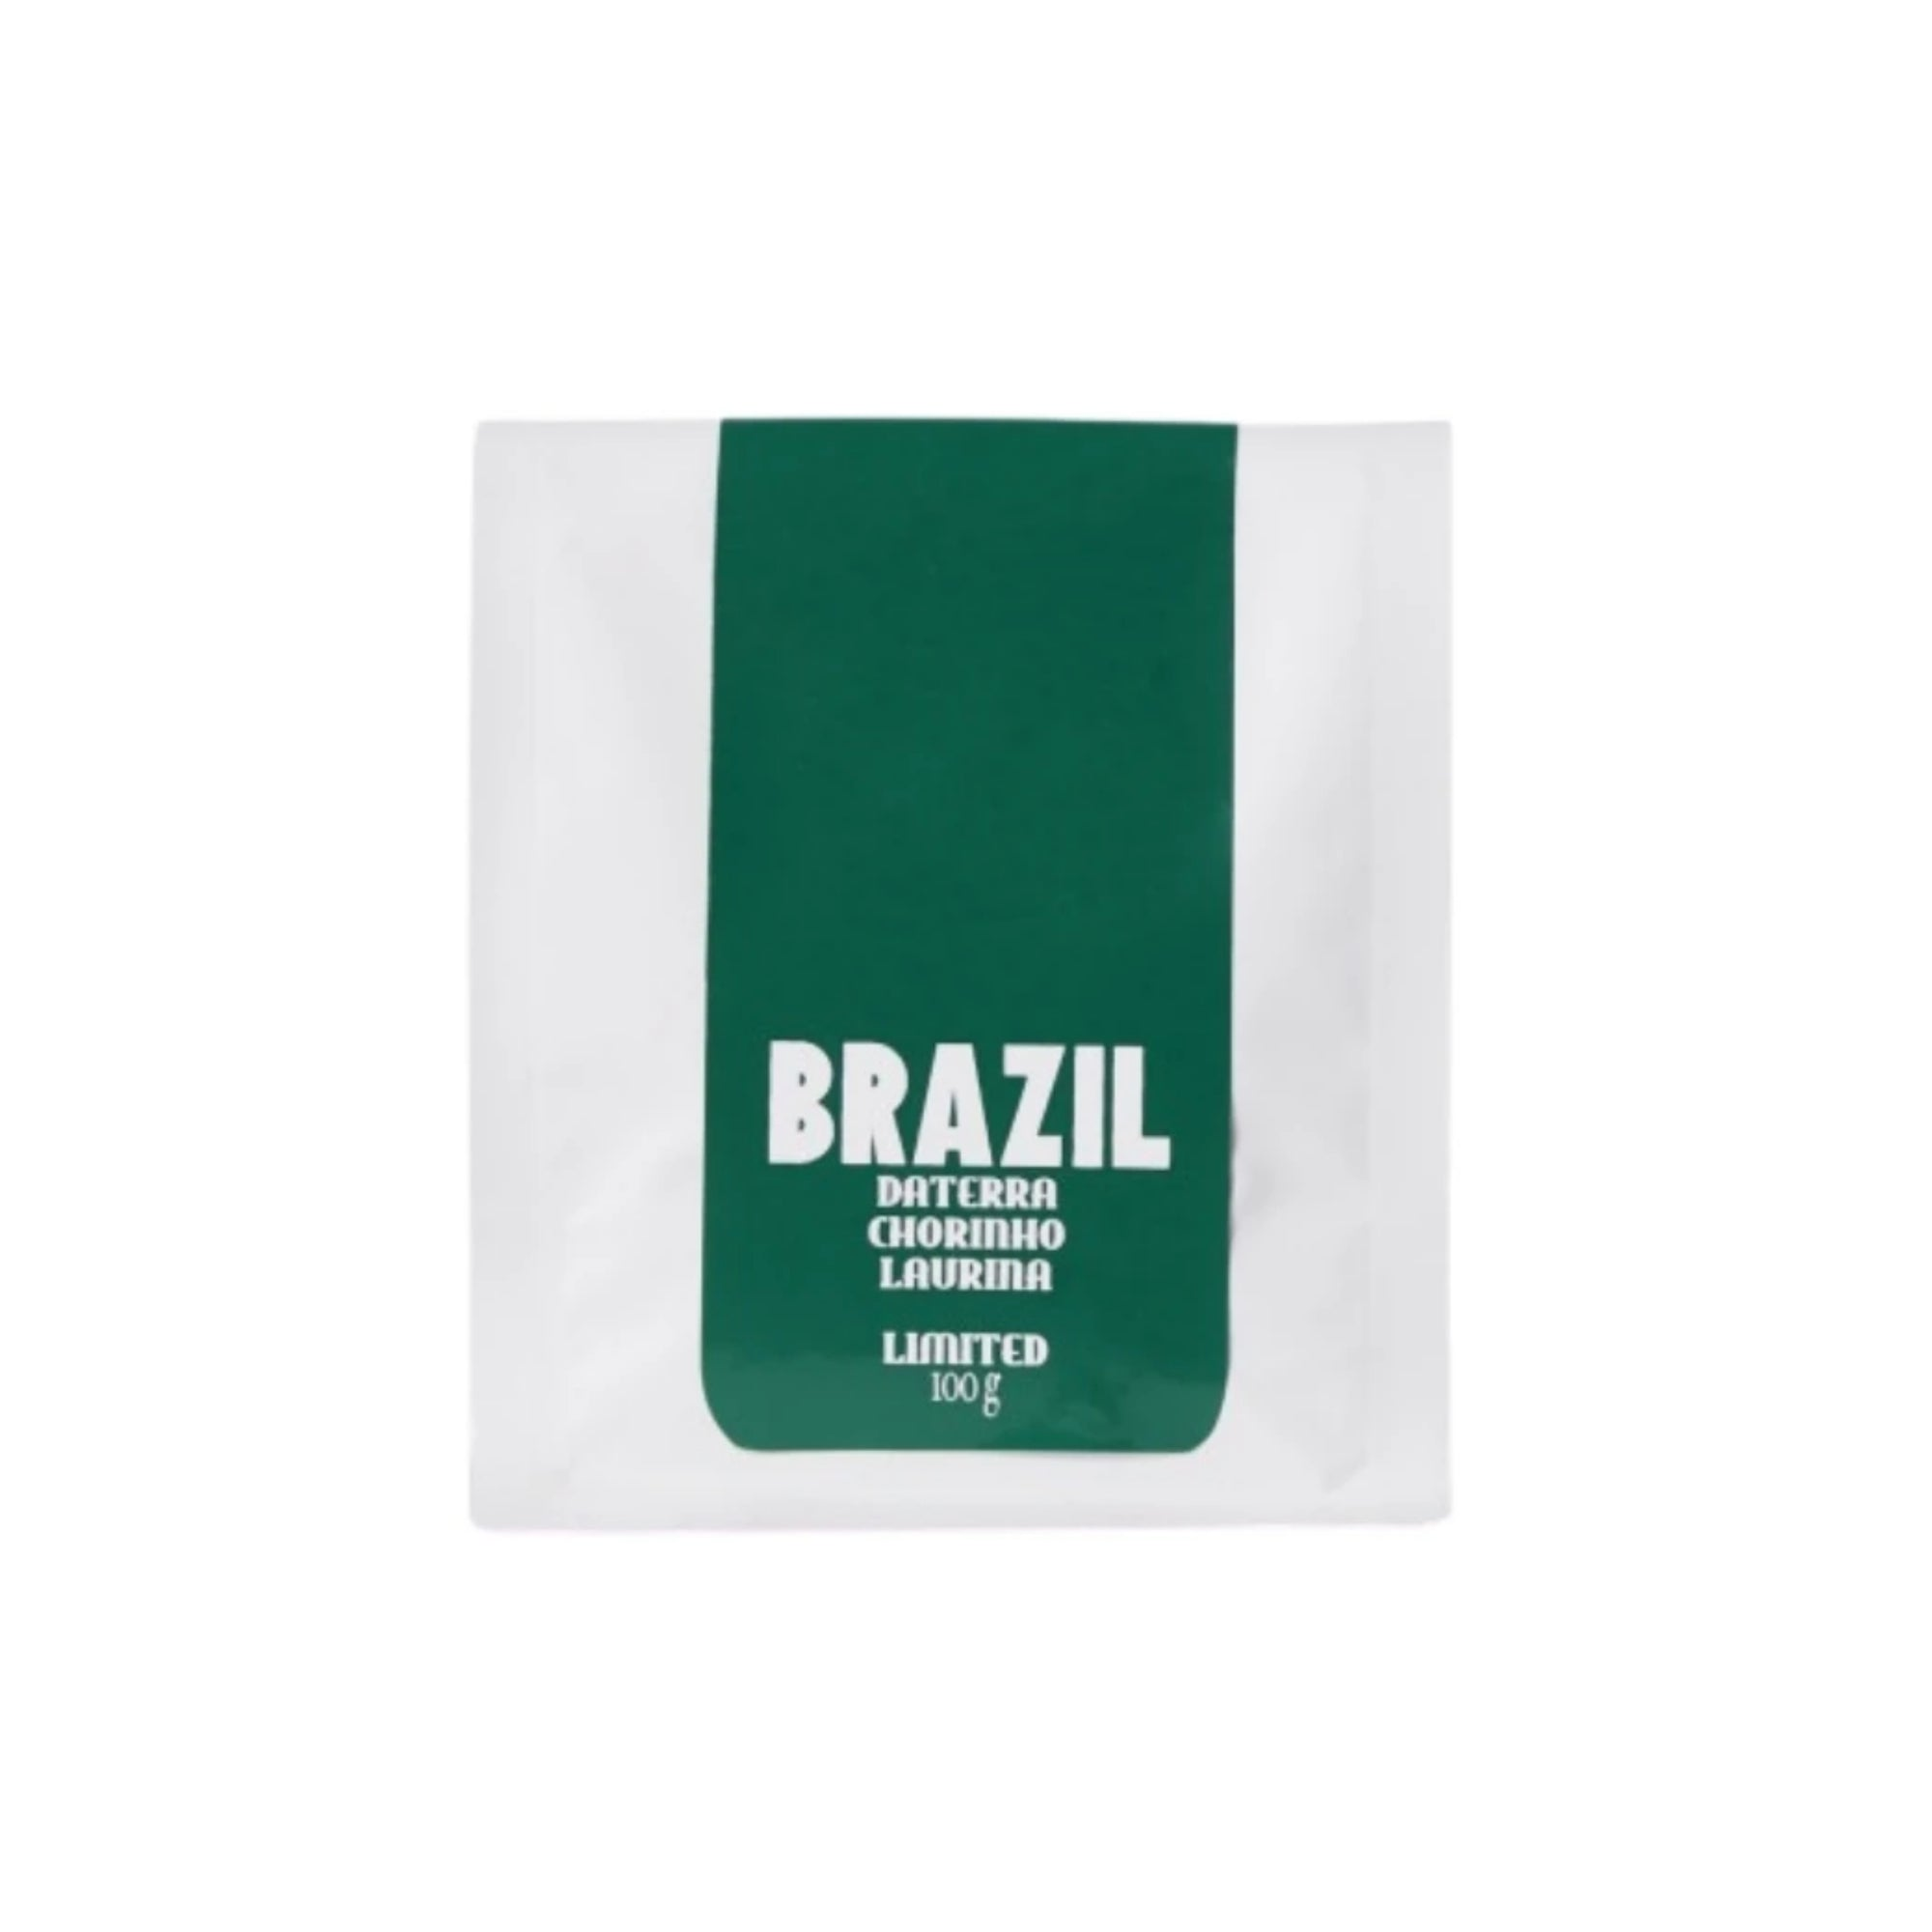 BRAZIL | DATERRA AUCTION SET / LAURINA & ACAUA, SEMI-CARBONIC MACERATION